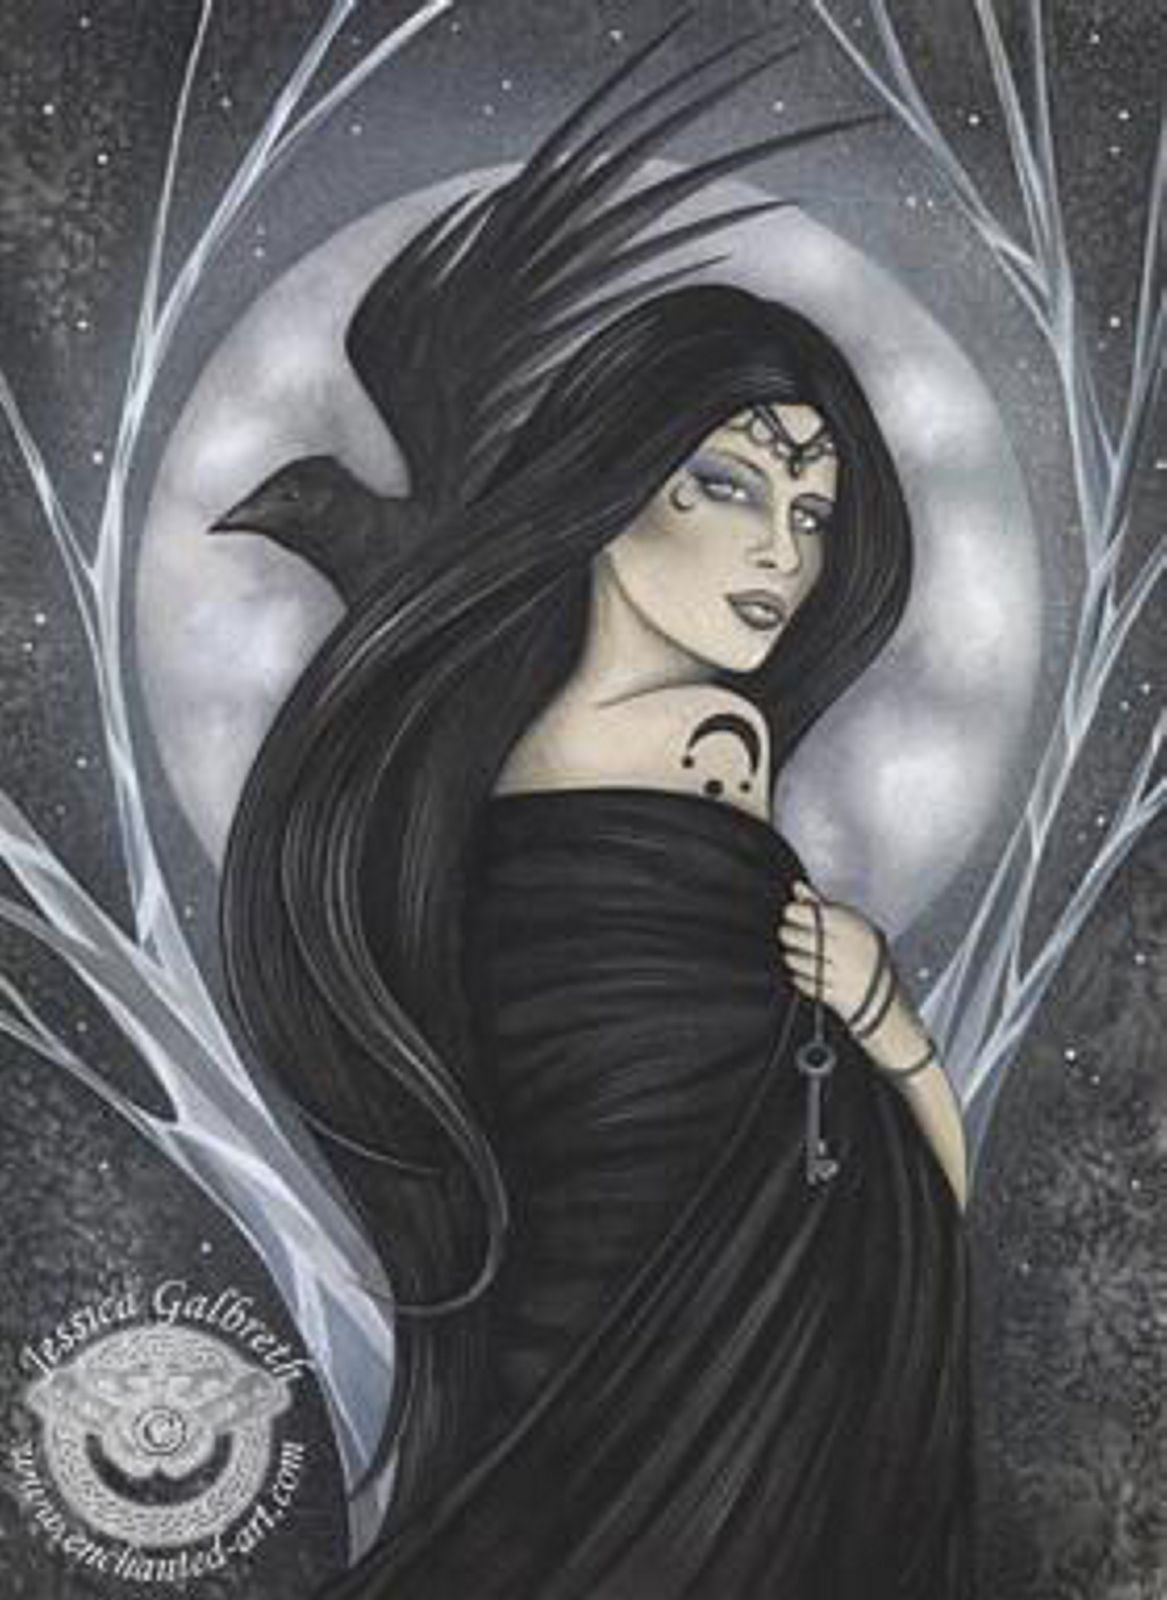 nyx goddess of night a year and a day